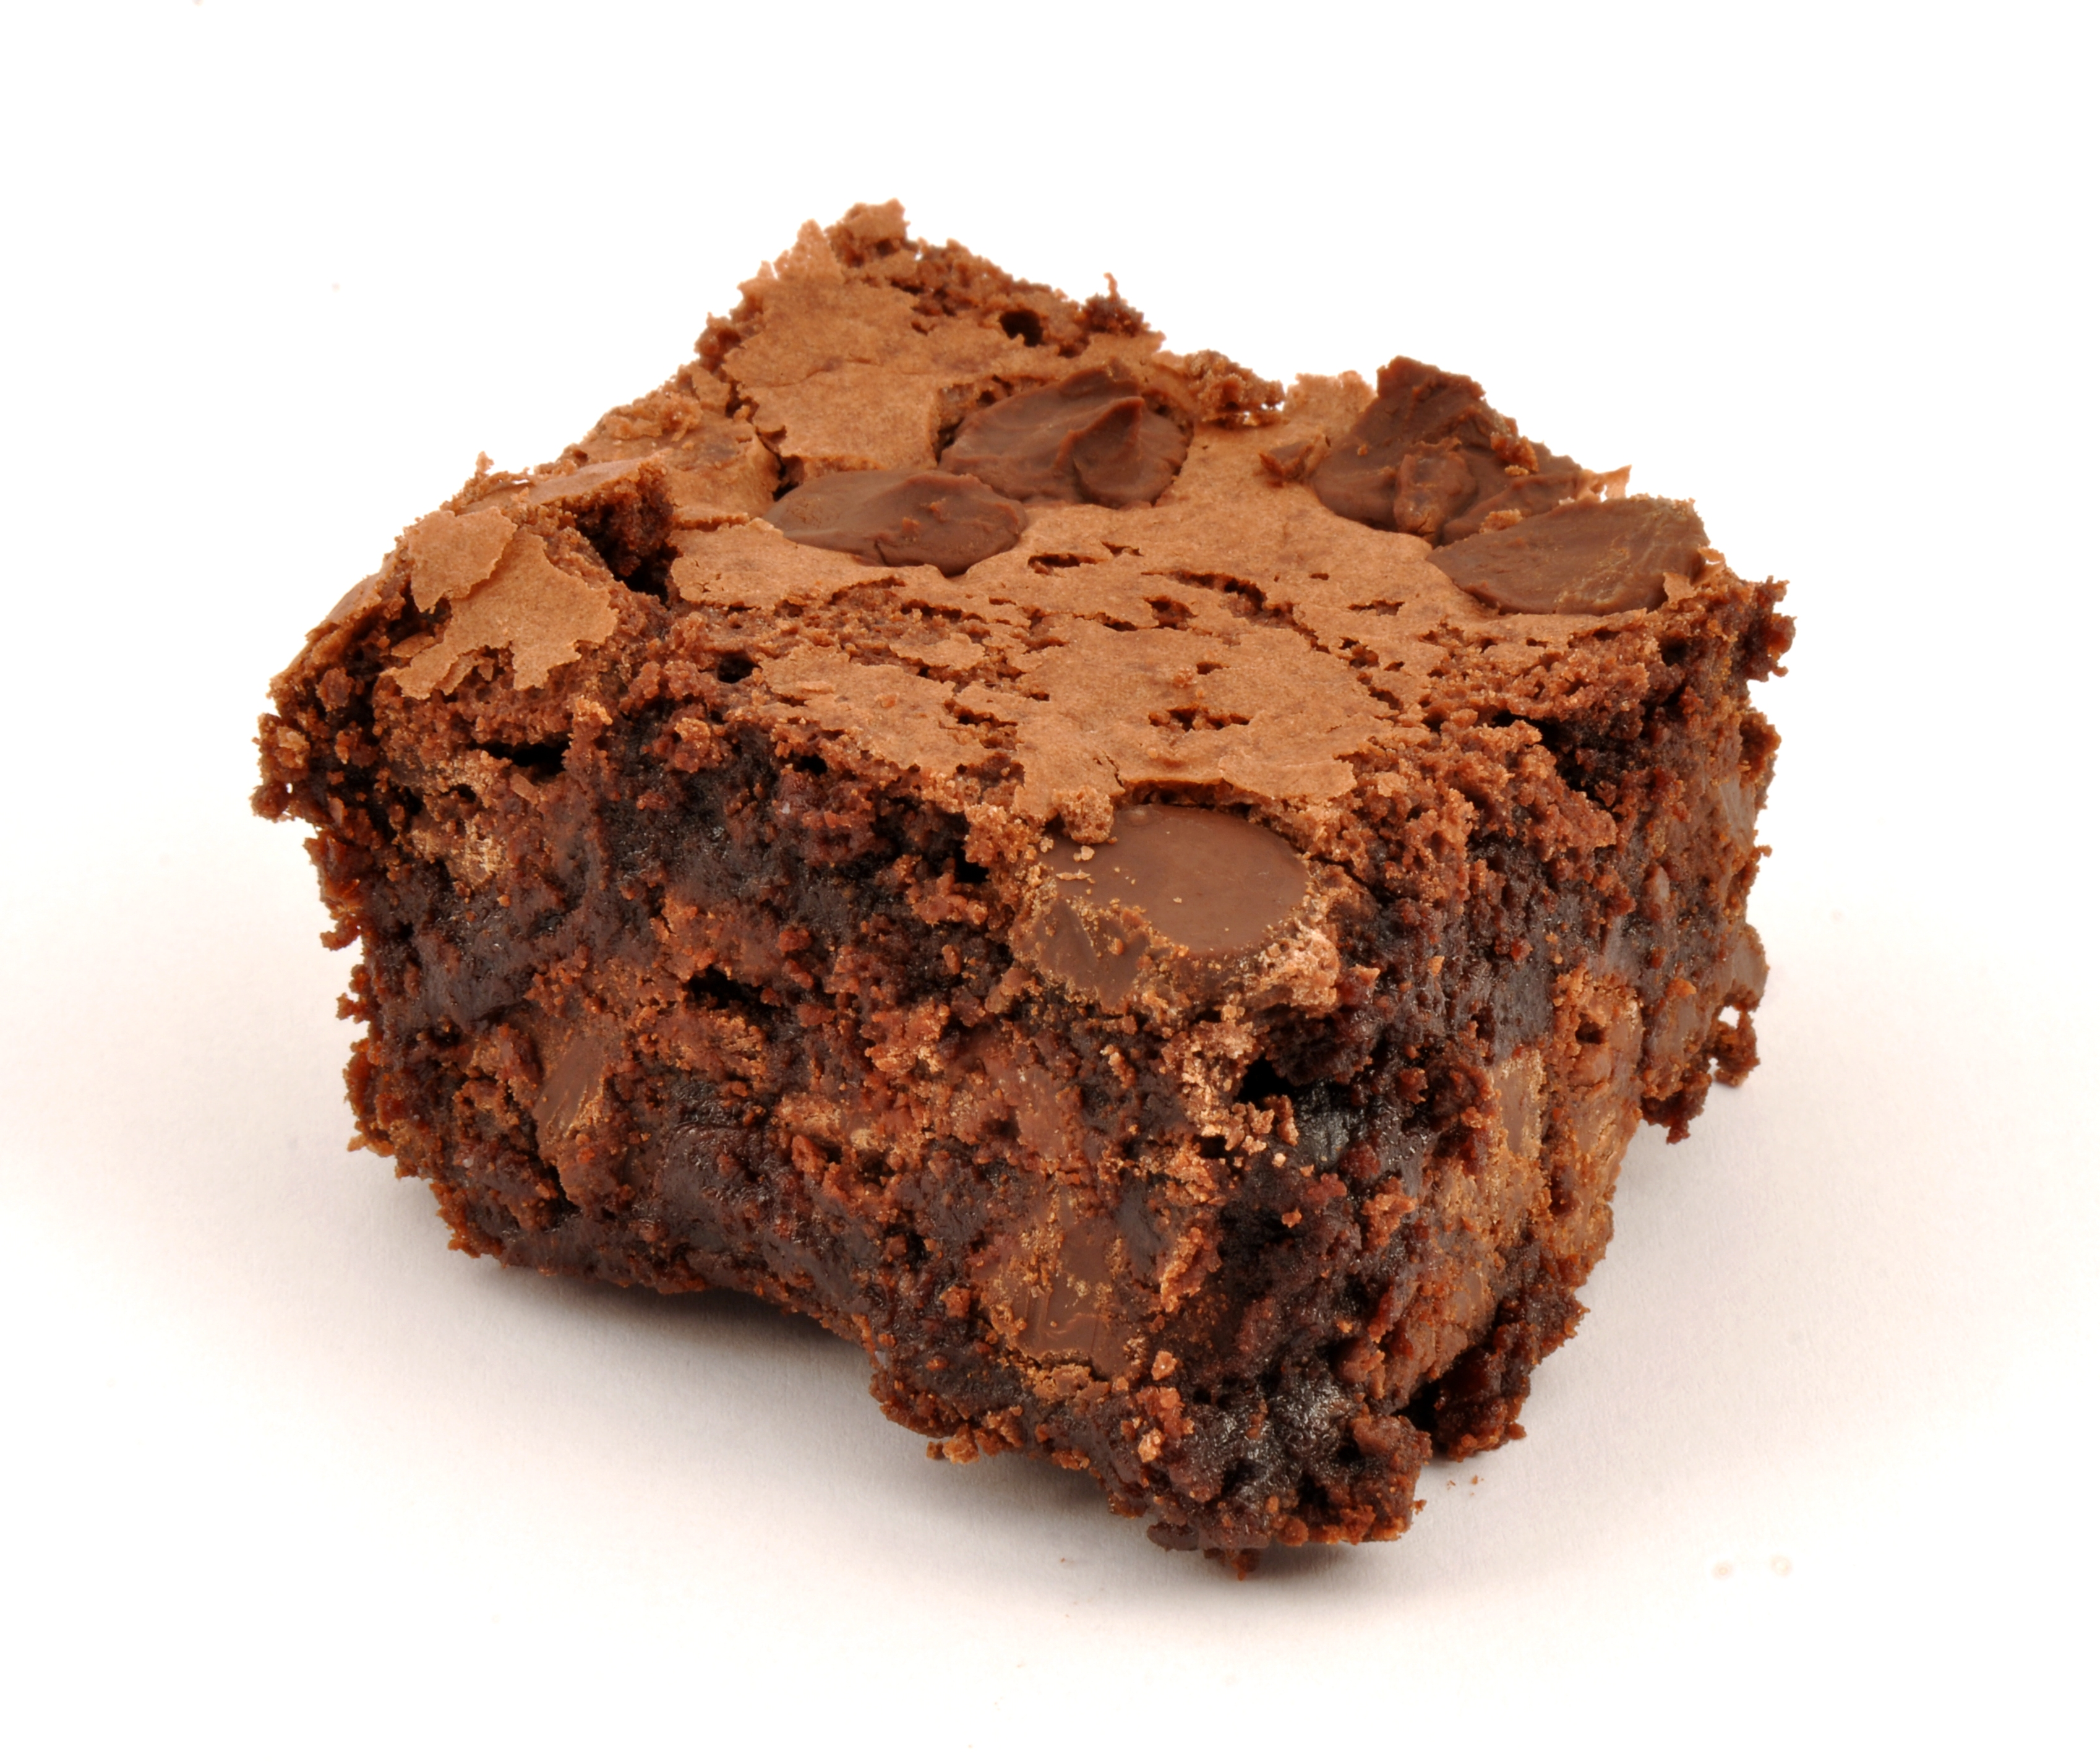 chocolatebrownie